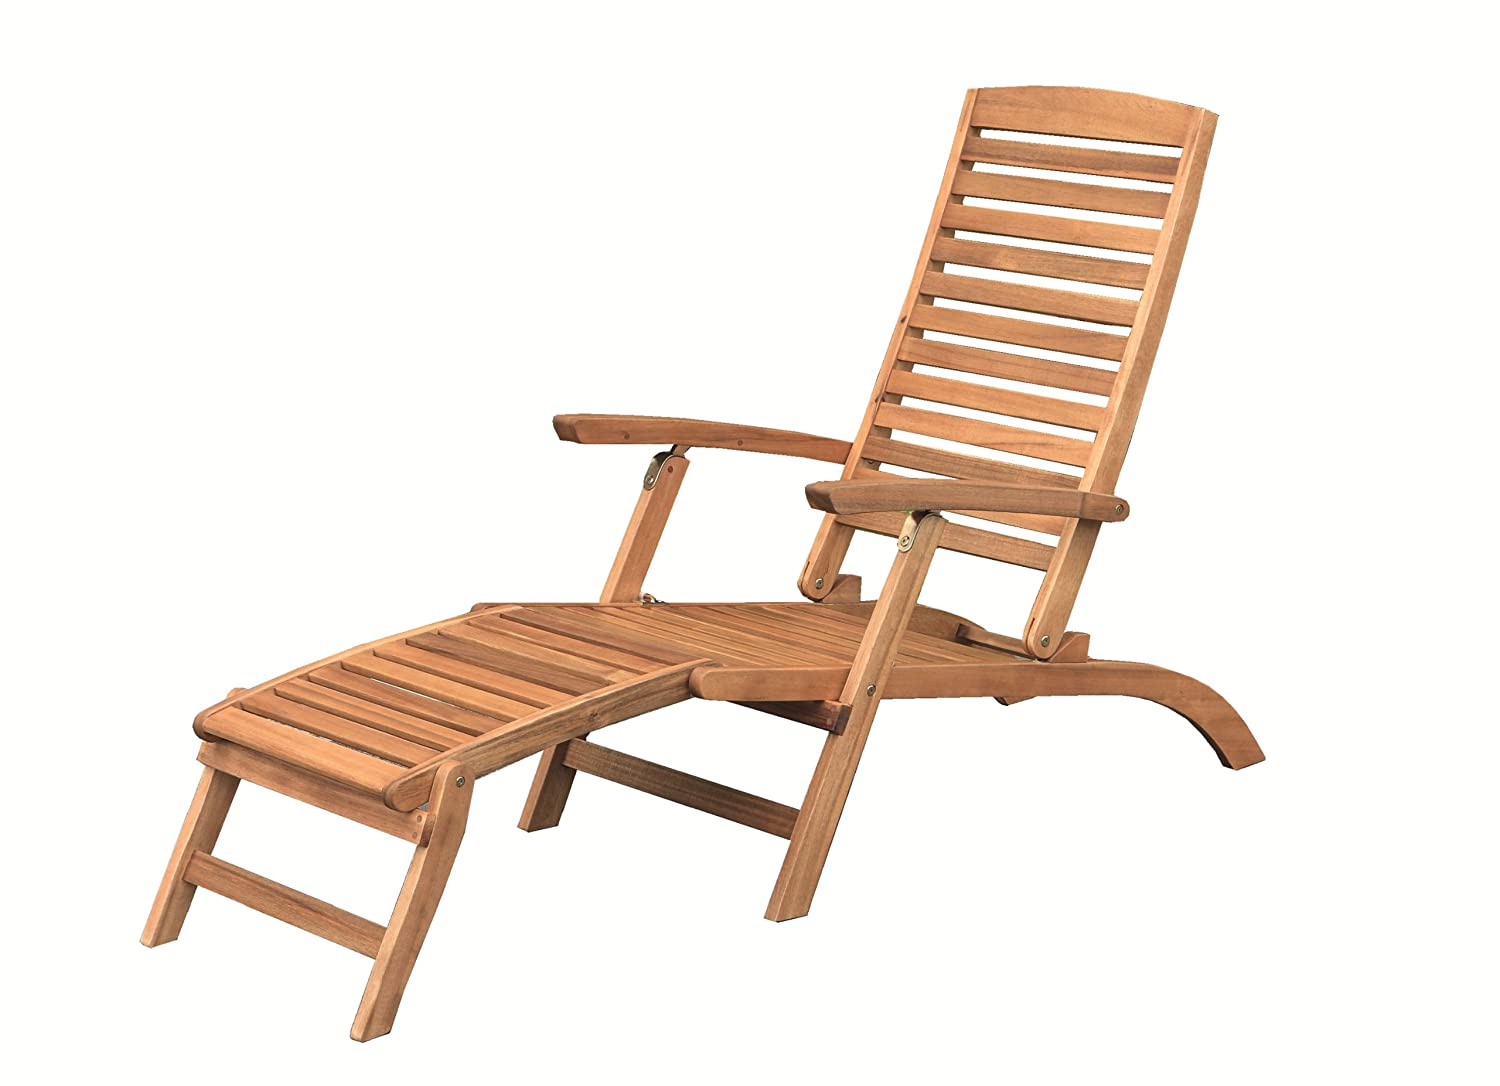 Brema 147 Akazie Deckchair France